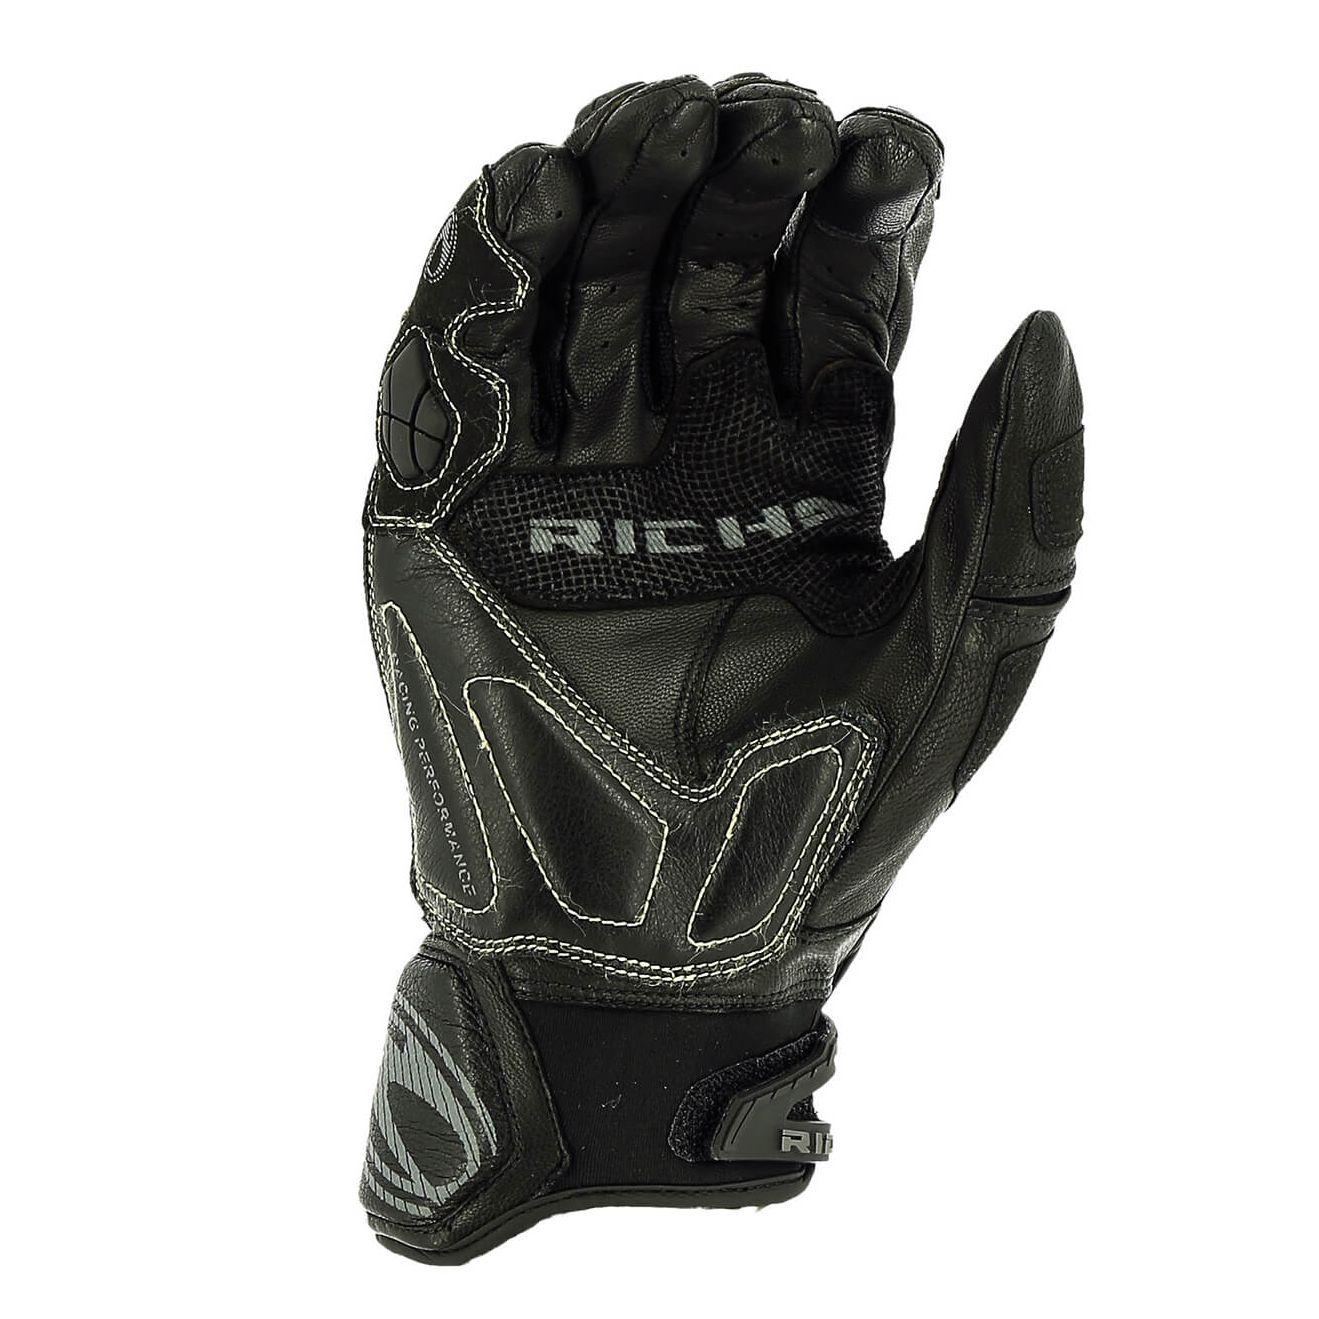 Gants Richa STEALTH